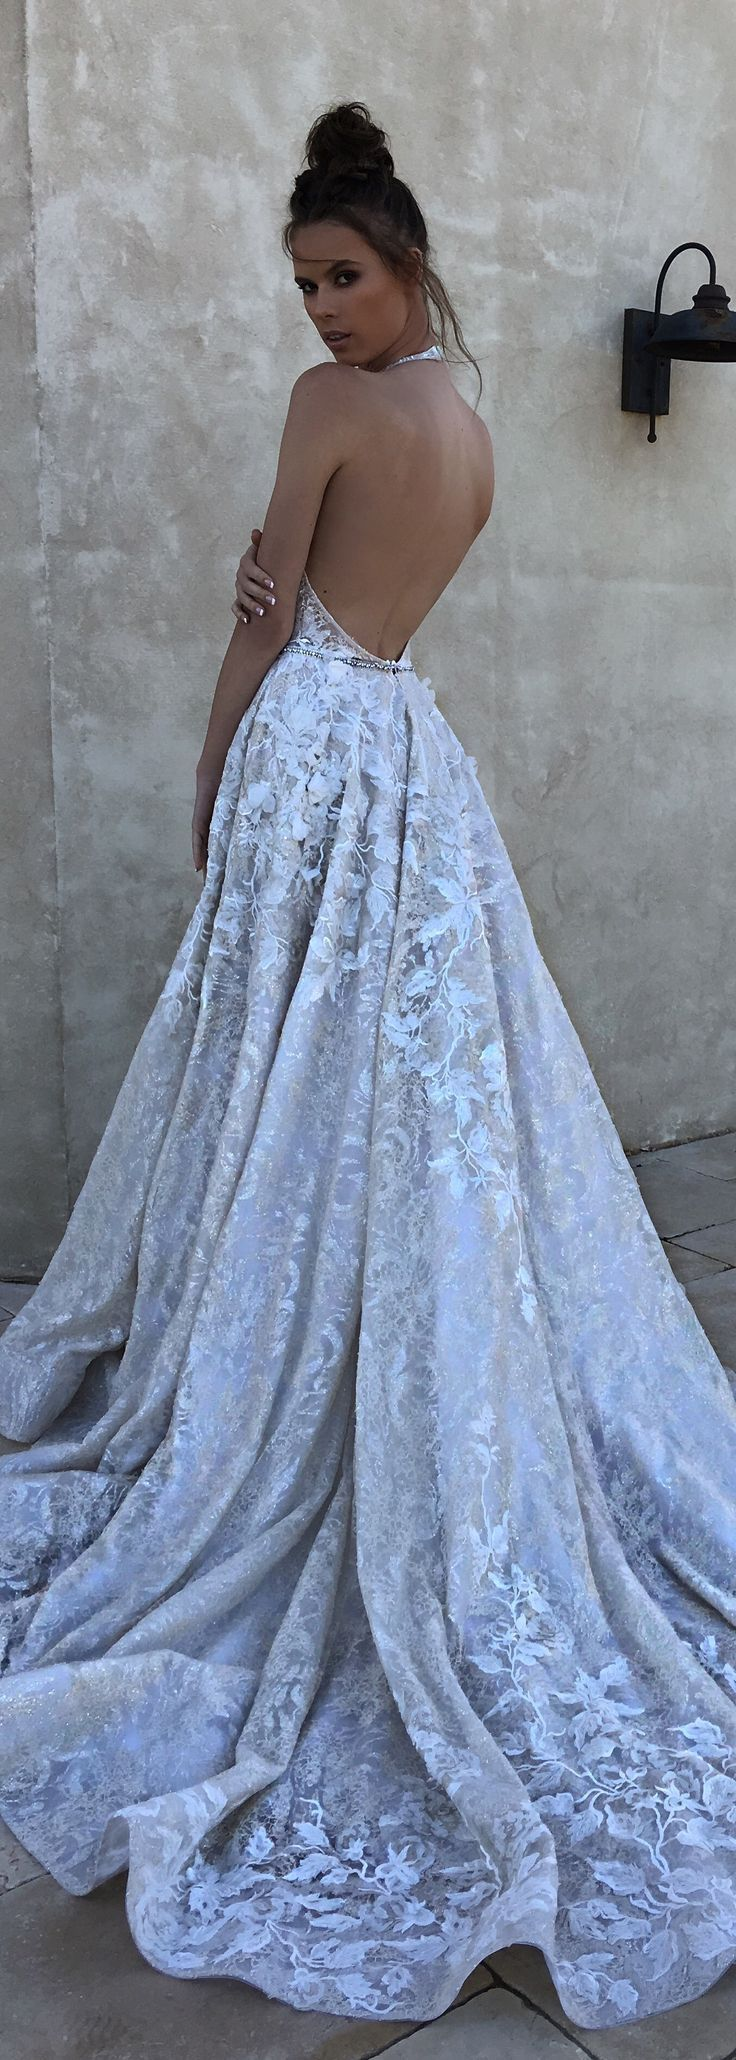 Magnificent Wedding Dresses Concord Nc Collection - All Wedding ...